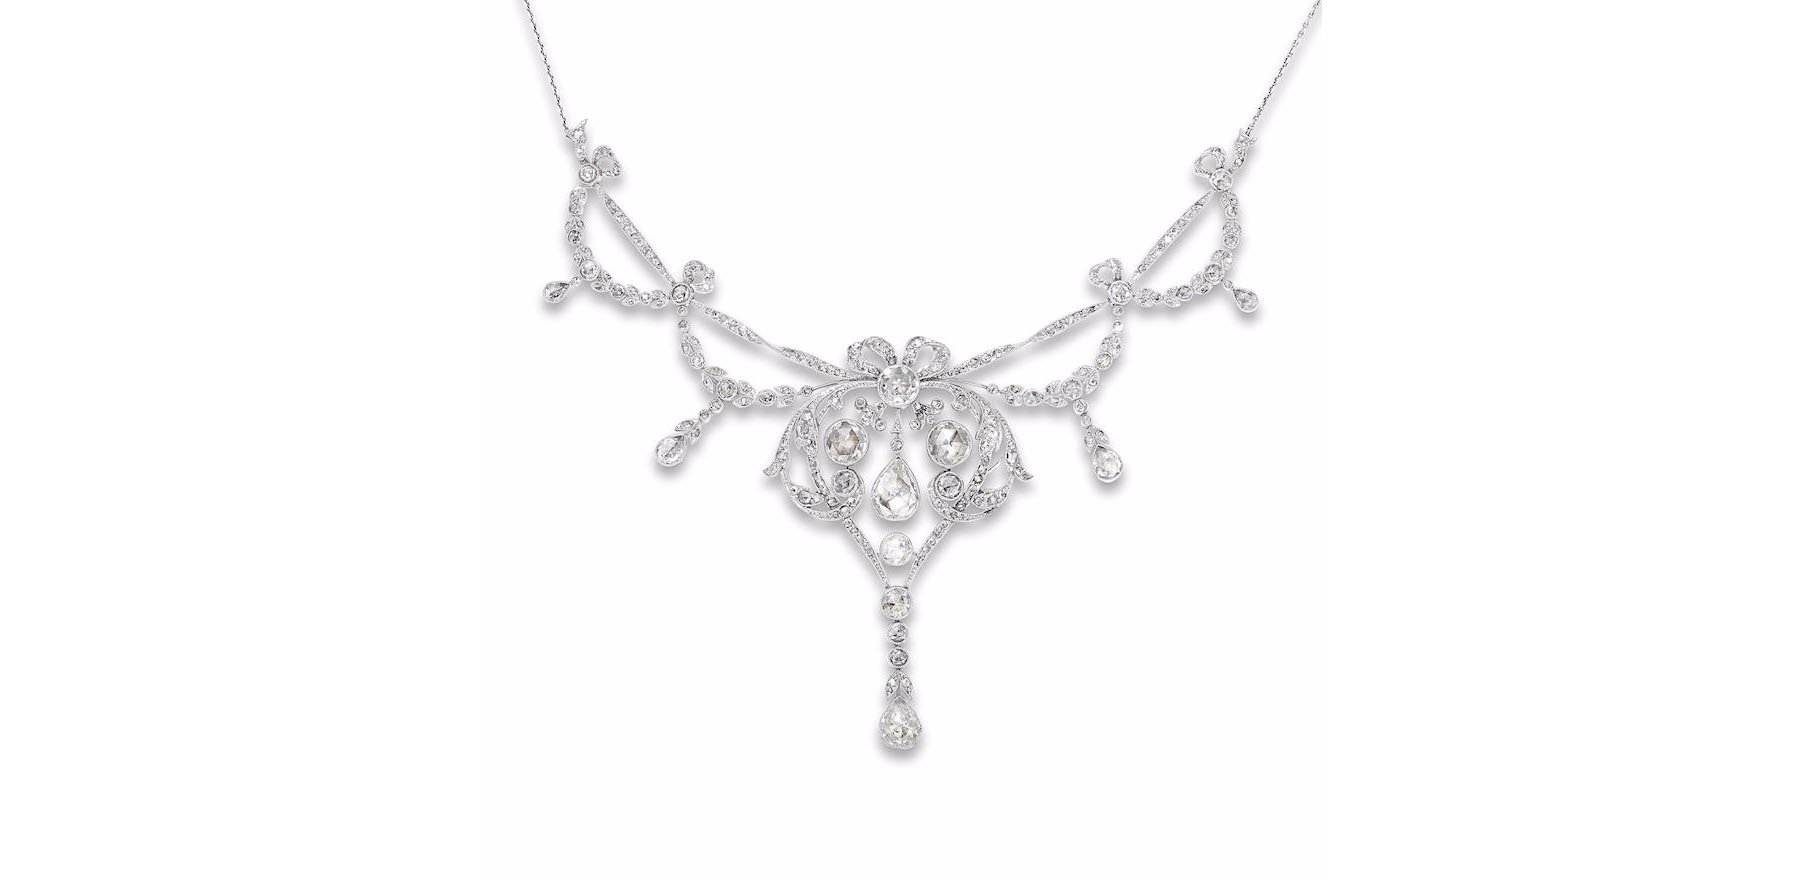 Bonebakker eopque necklace